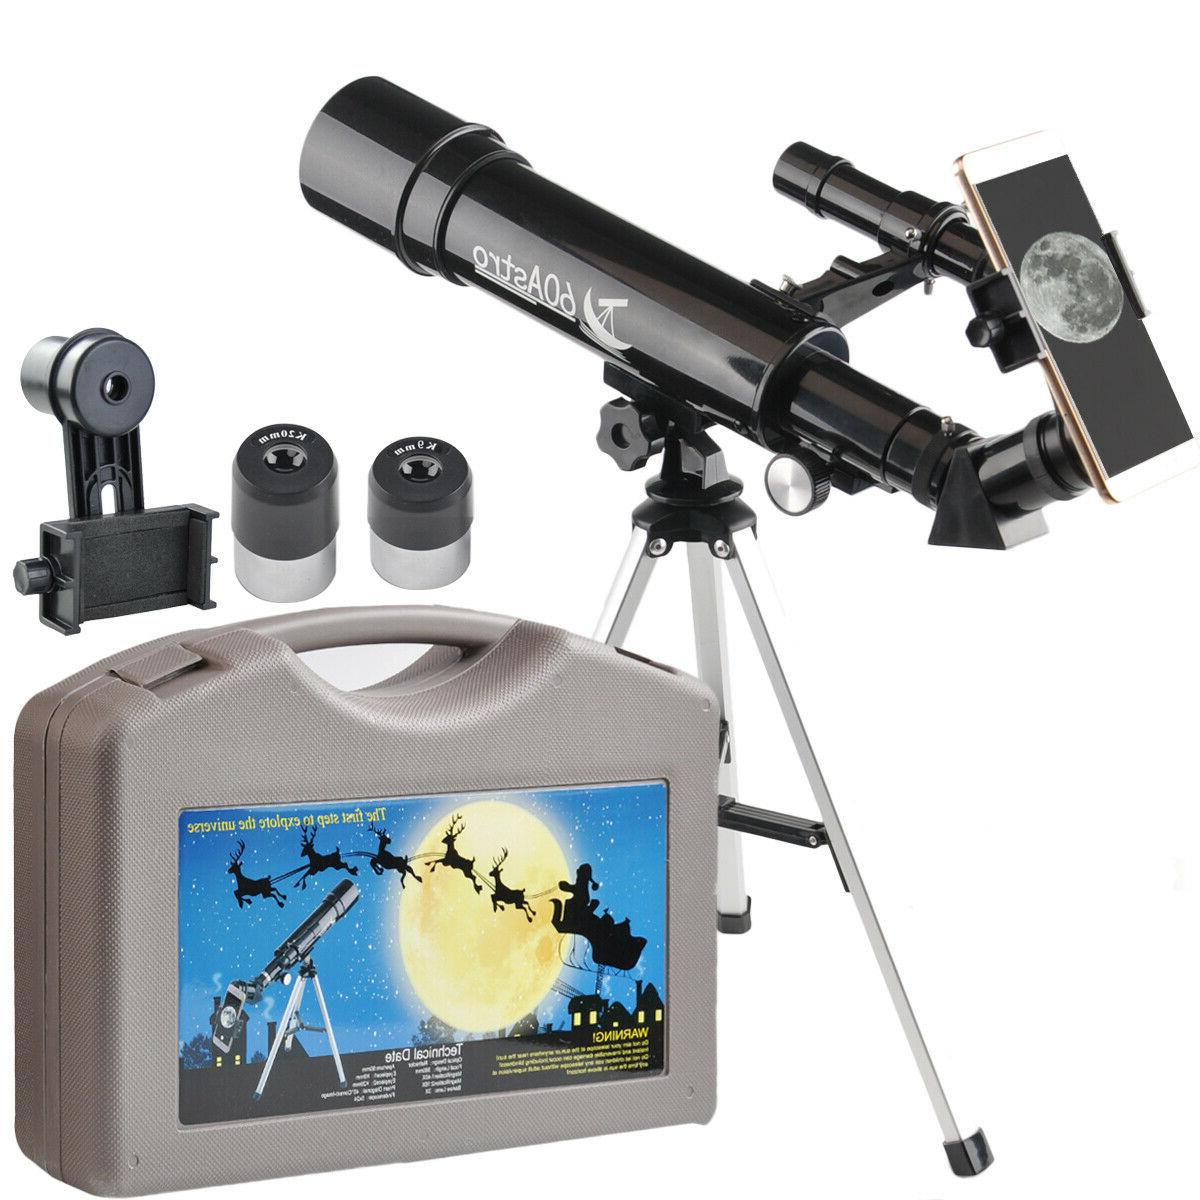 Gosky 60 Refractor Telescope 60x360mm Monocular Scope with T